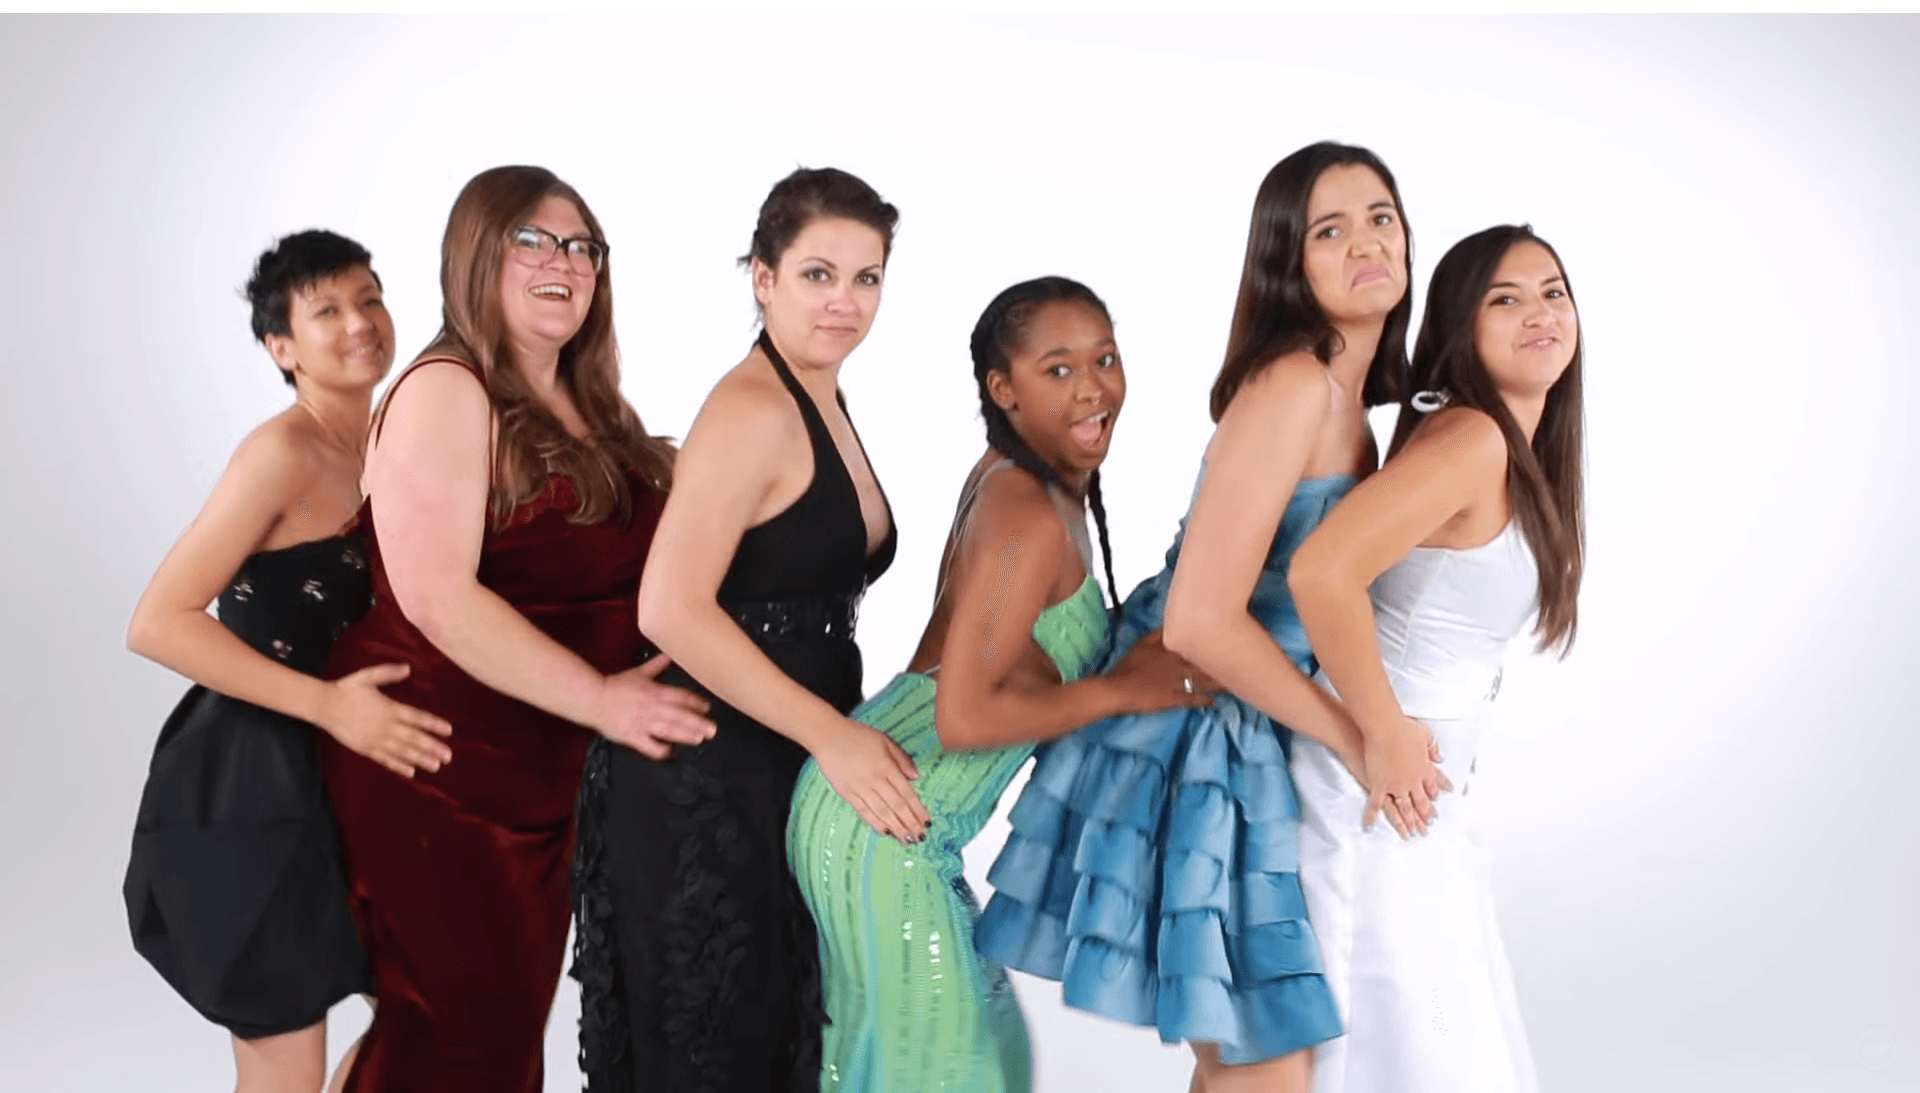 These women tried on their old prom dresses to reminisce about more fashion-questionable times.